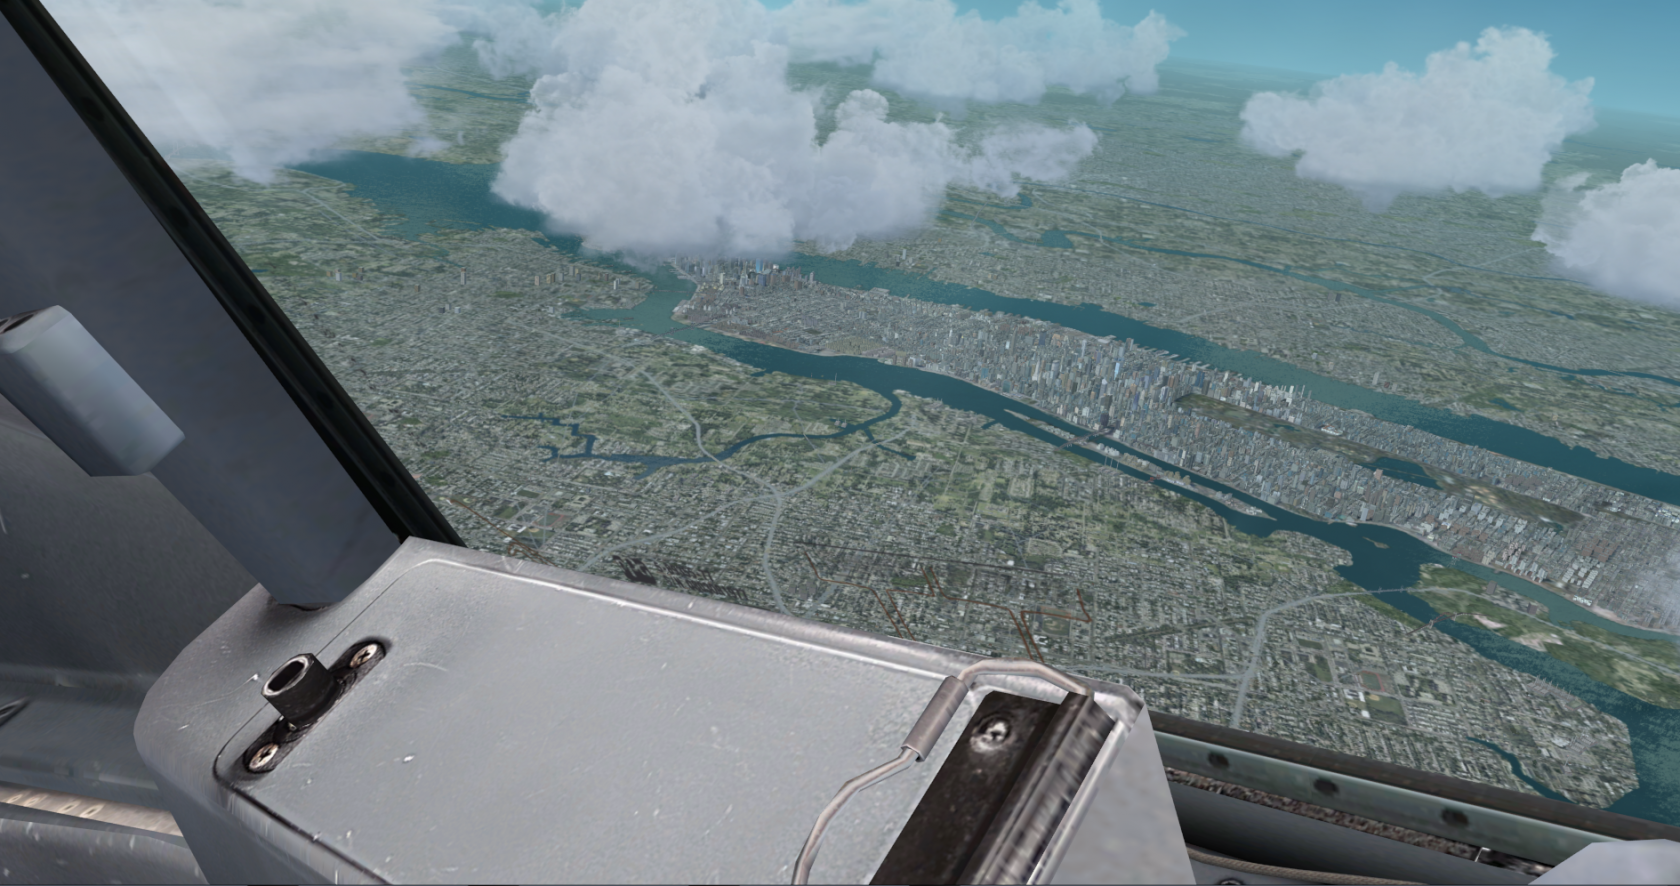 FSX - New York City, NY (In other words, Manhattan)